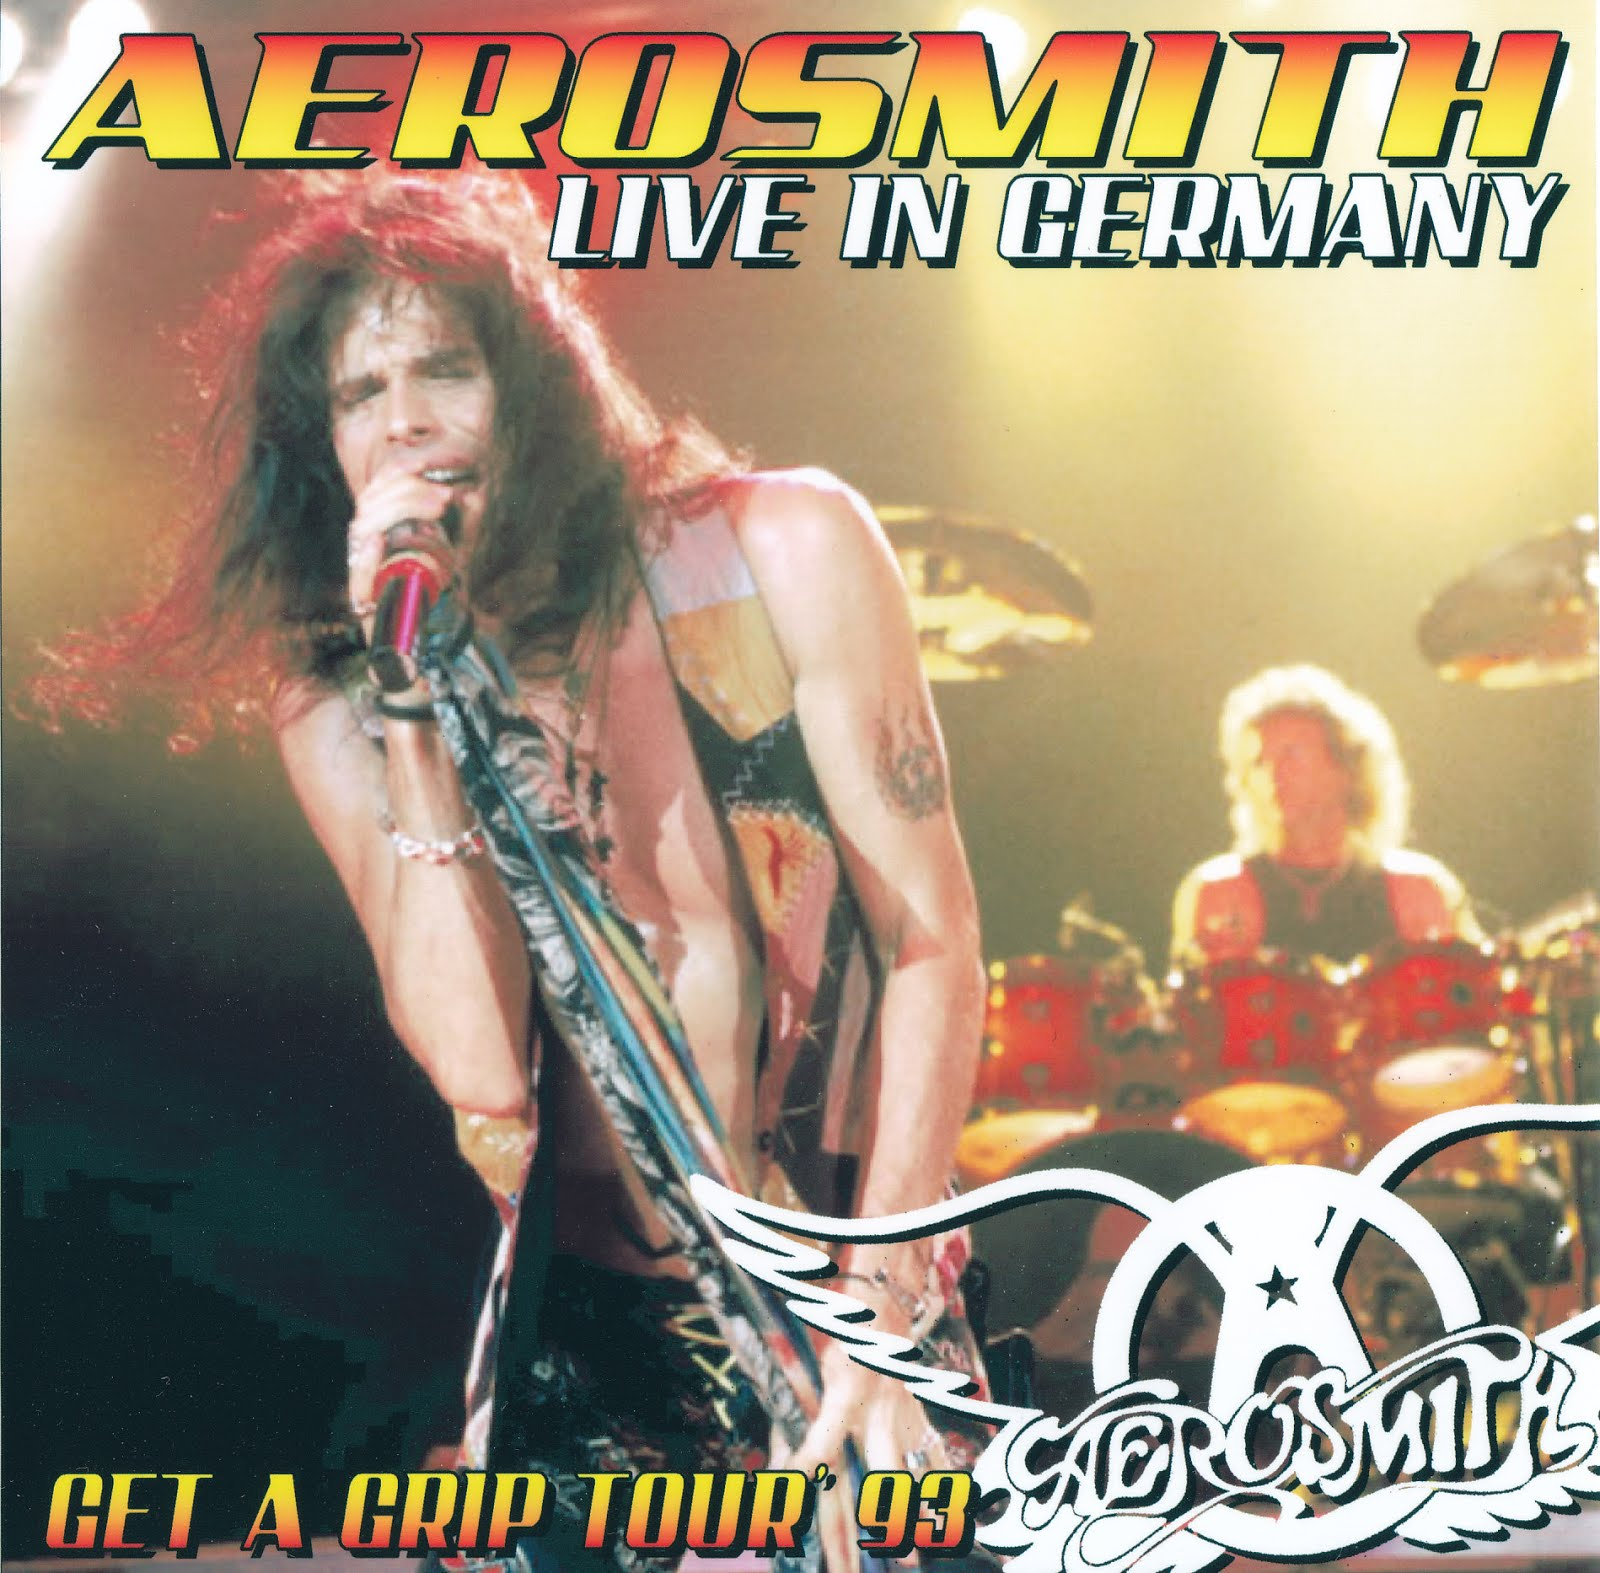 Aerosmith Bootlegs Cover Arts Live In Germany Oldenburg